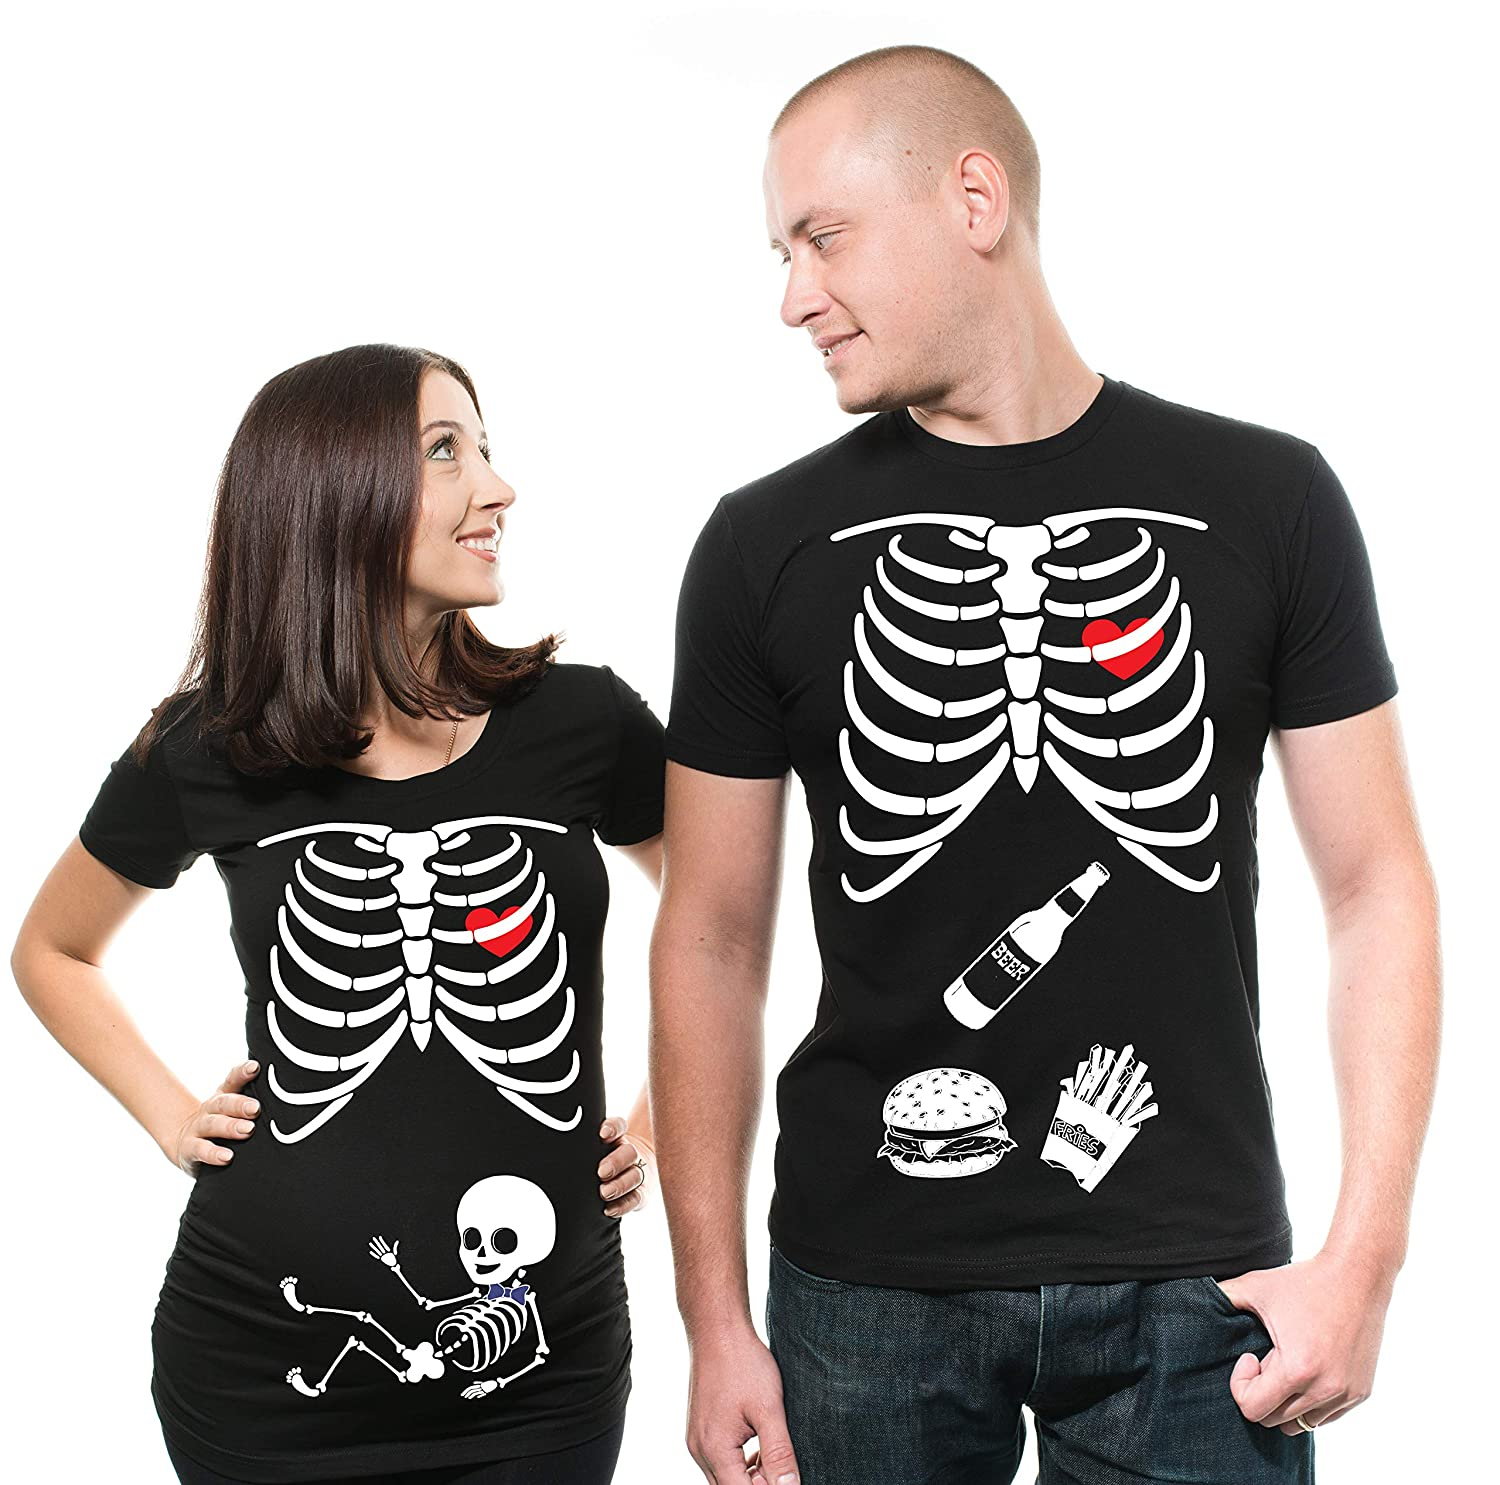 1ad2fde41baac Amazon.com: Skeleton X-ray Maternity Tee Shirt Baby Boy Maternity T-Shirt  Pregnancy Shirt Couple Matching tees Halloween Costume t-Shirts Men XXXL -  Women ...